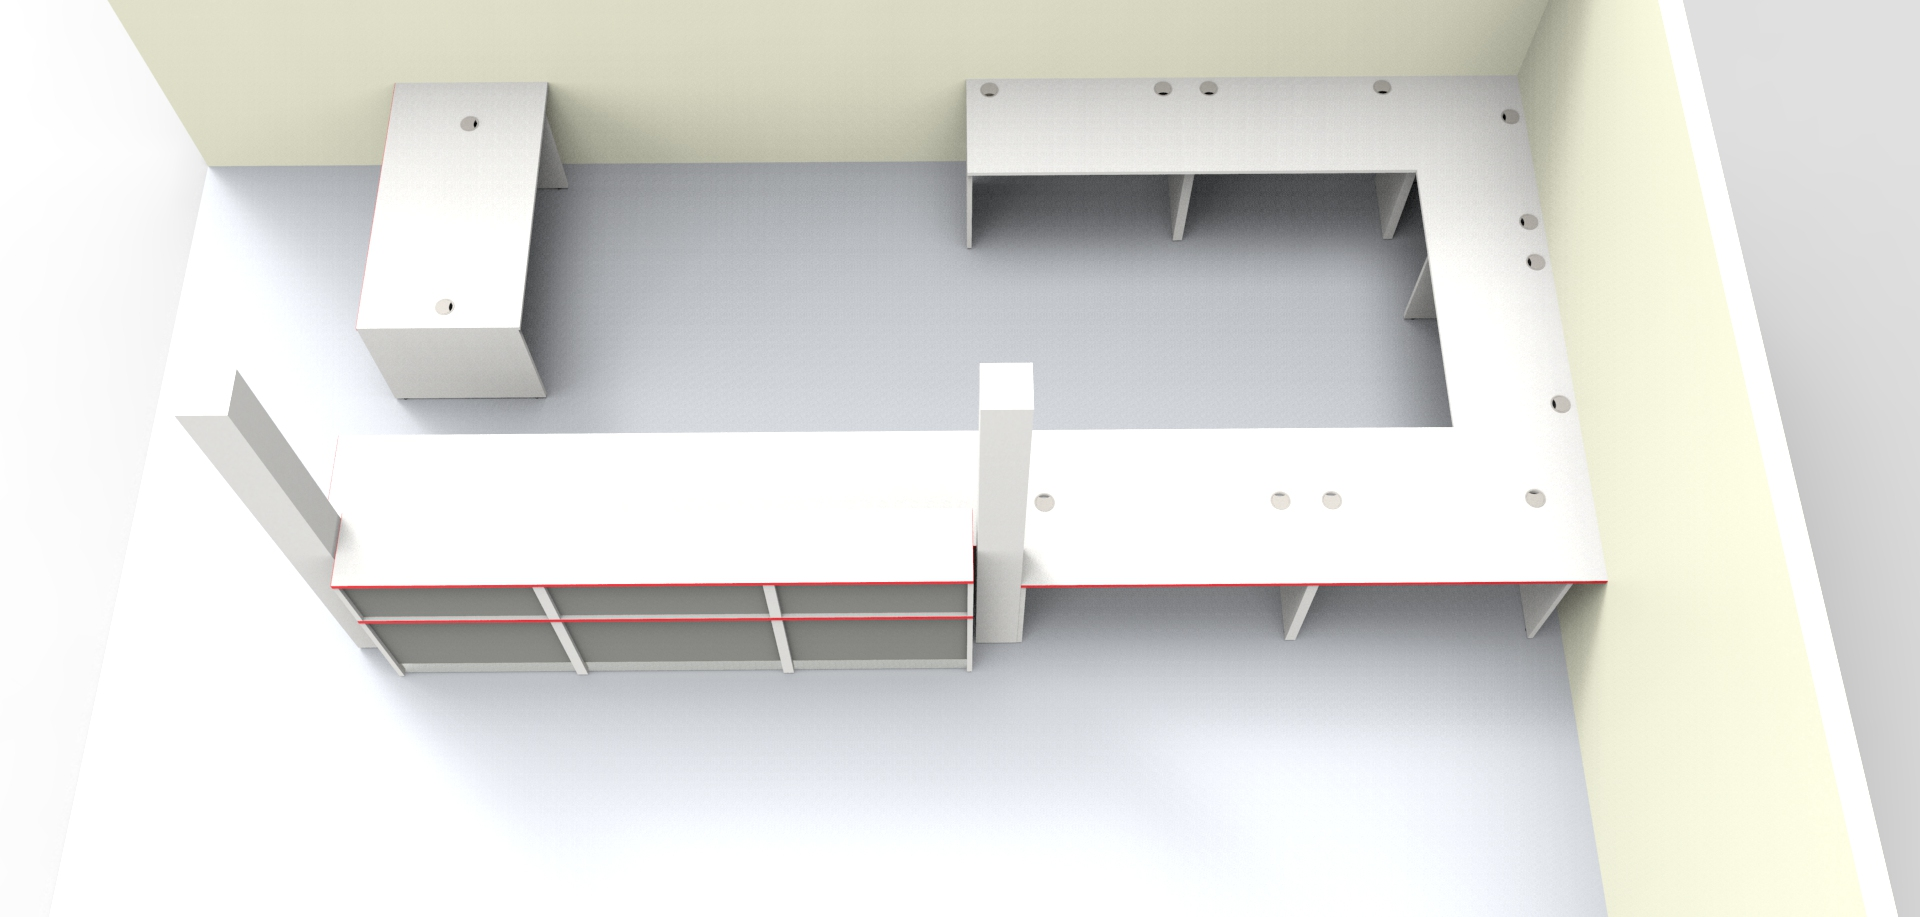 Render - Large bespoke reception desk finished in the clients company colours Light Greyand Titanium with Red edging View from above